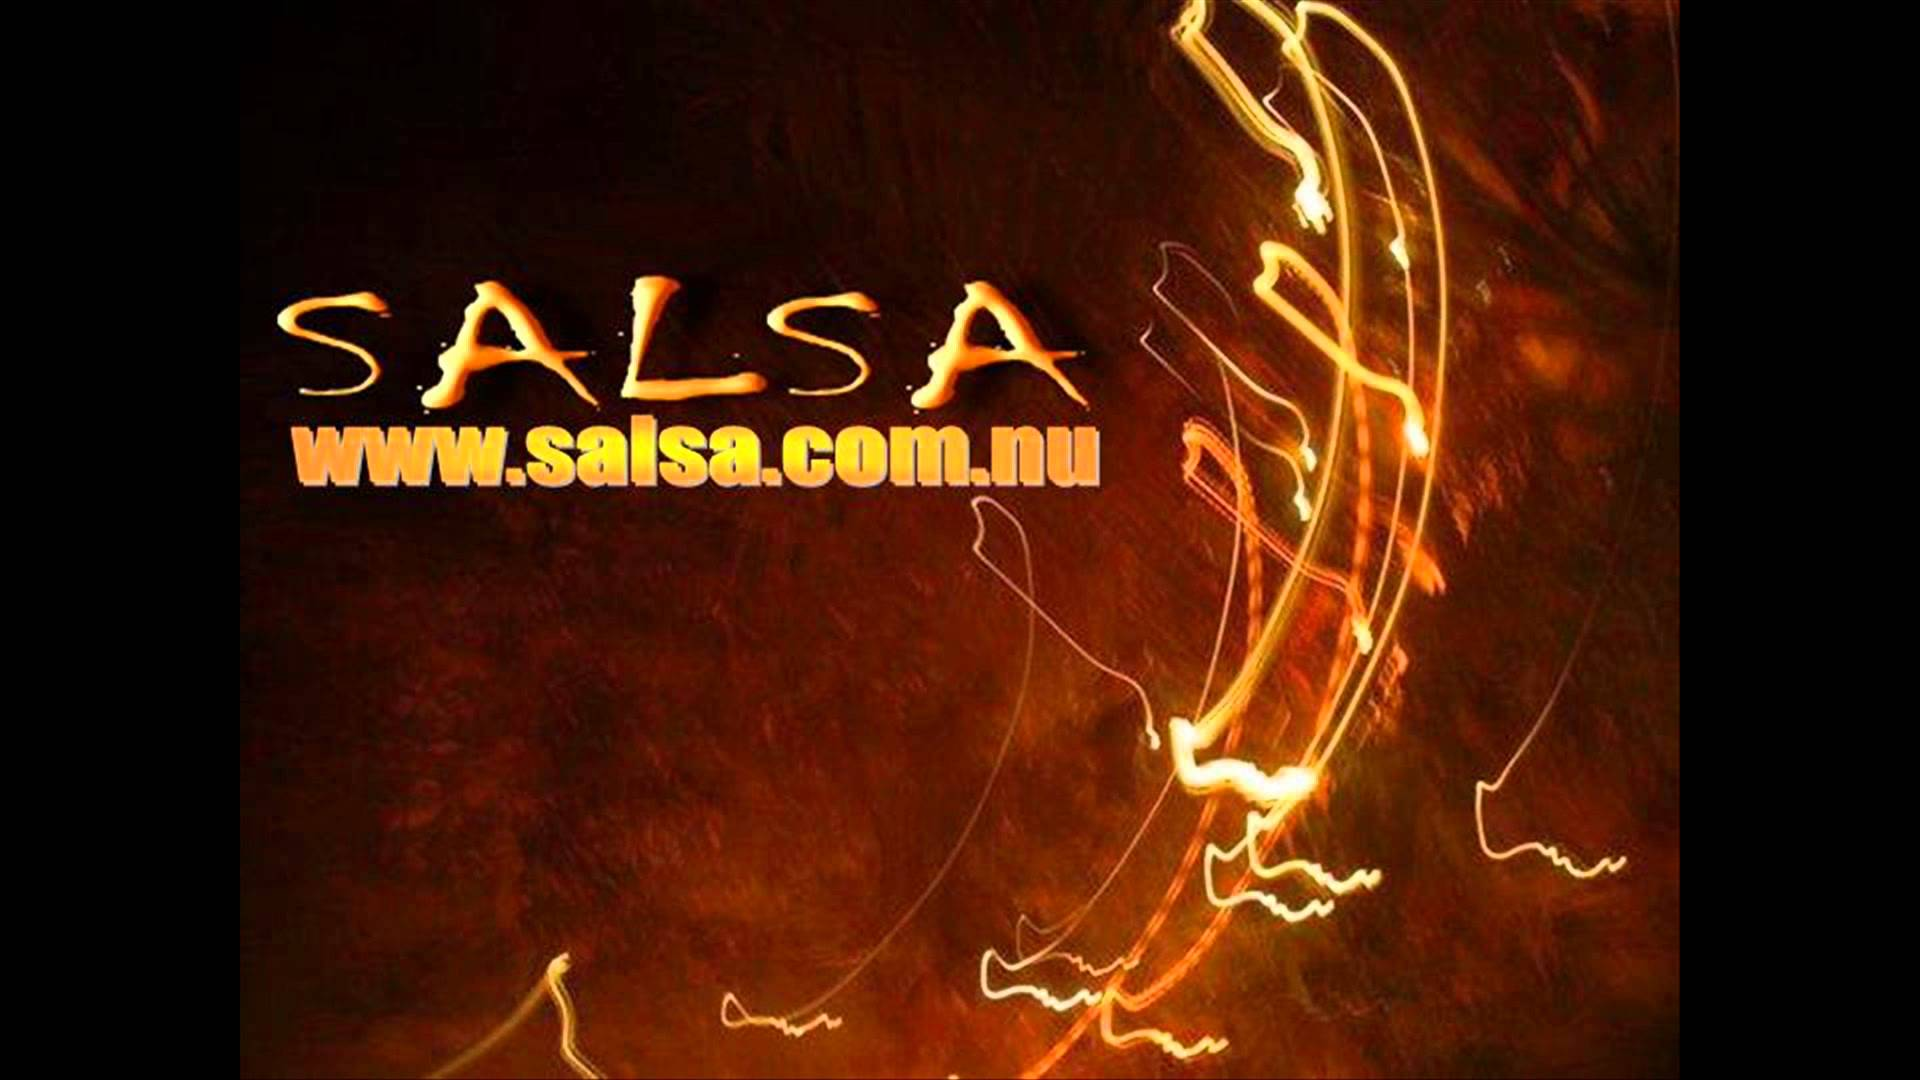 PC858 Salsa Wallpapers 1920x1080 Wallperiocom 1920x1080